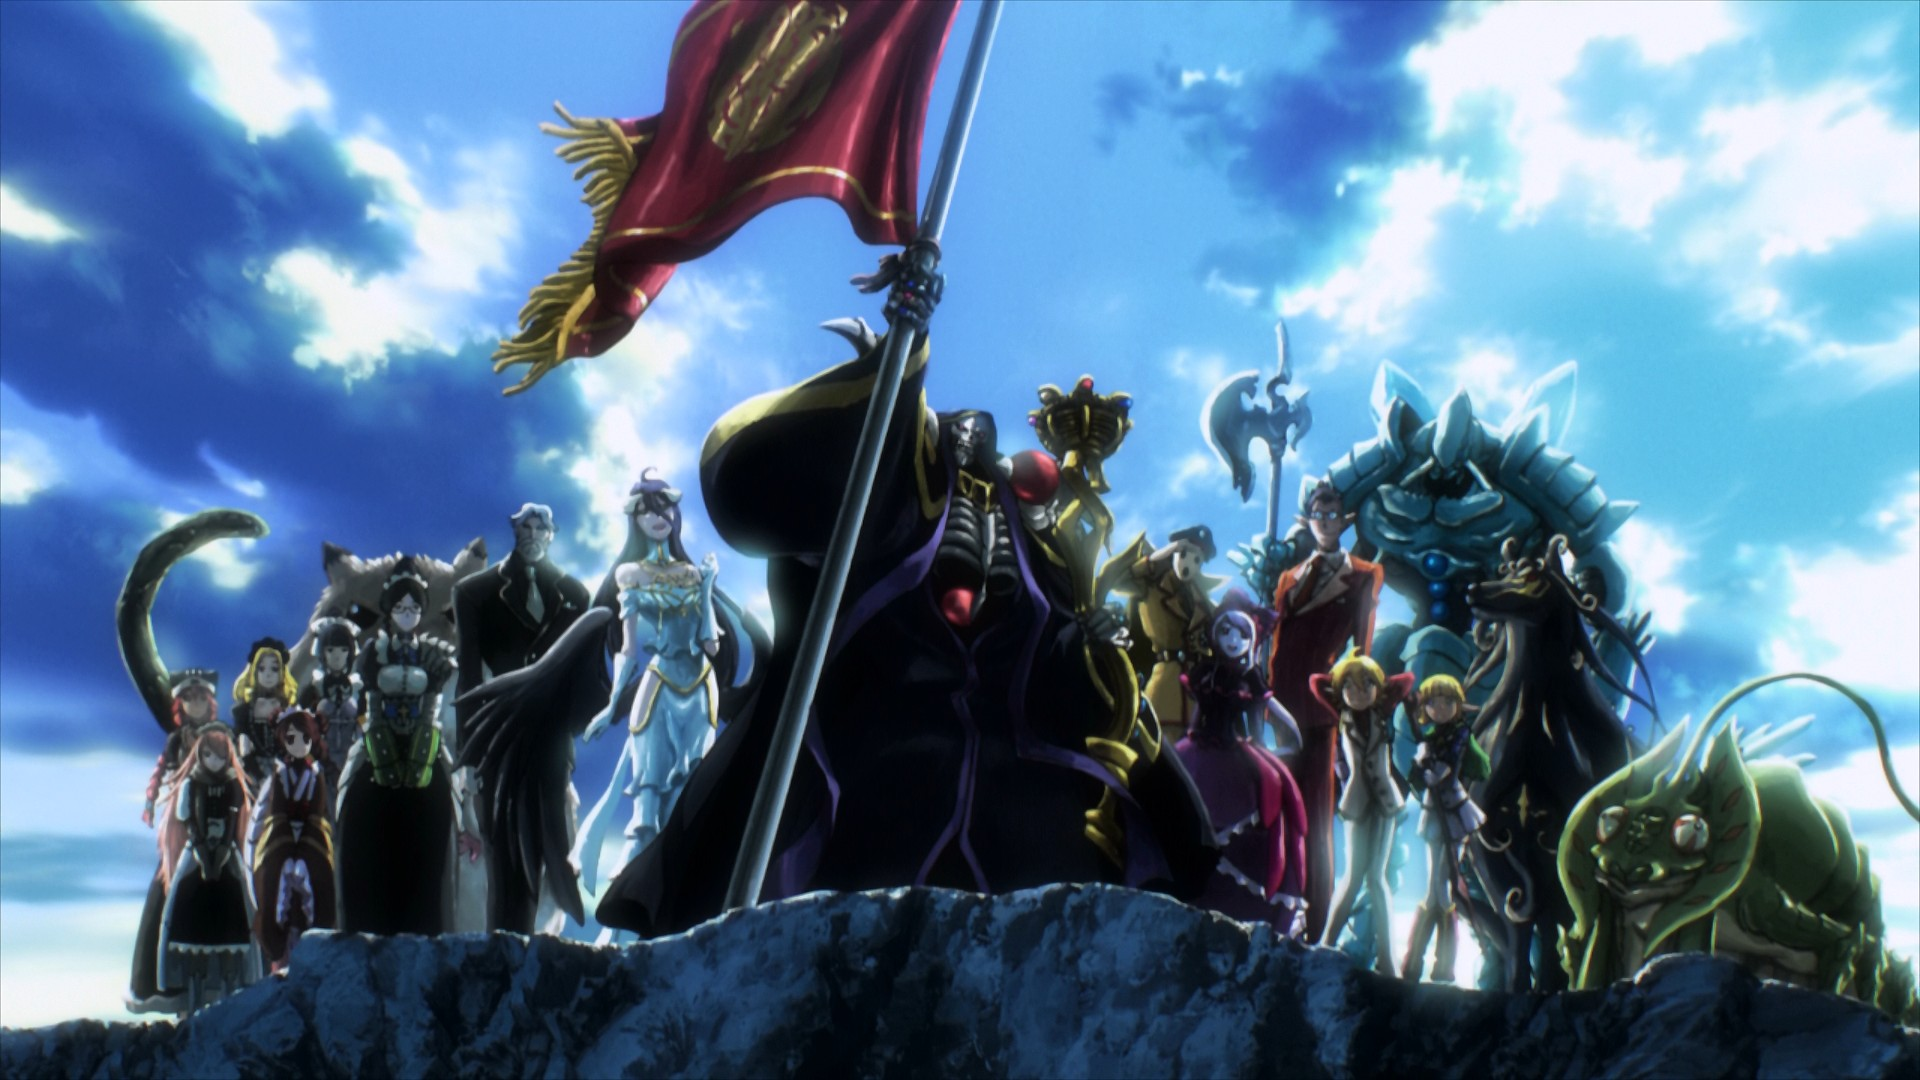 Overlord Wallpaper Hd Posted By Ethan Peltier